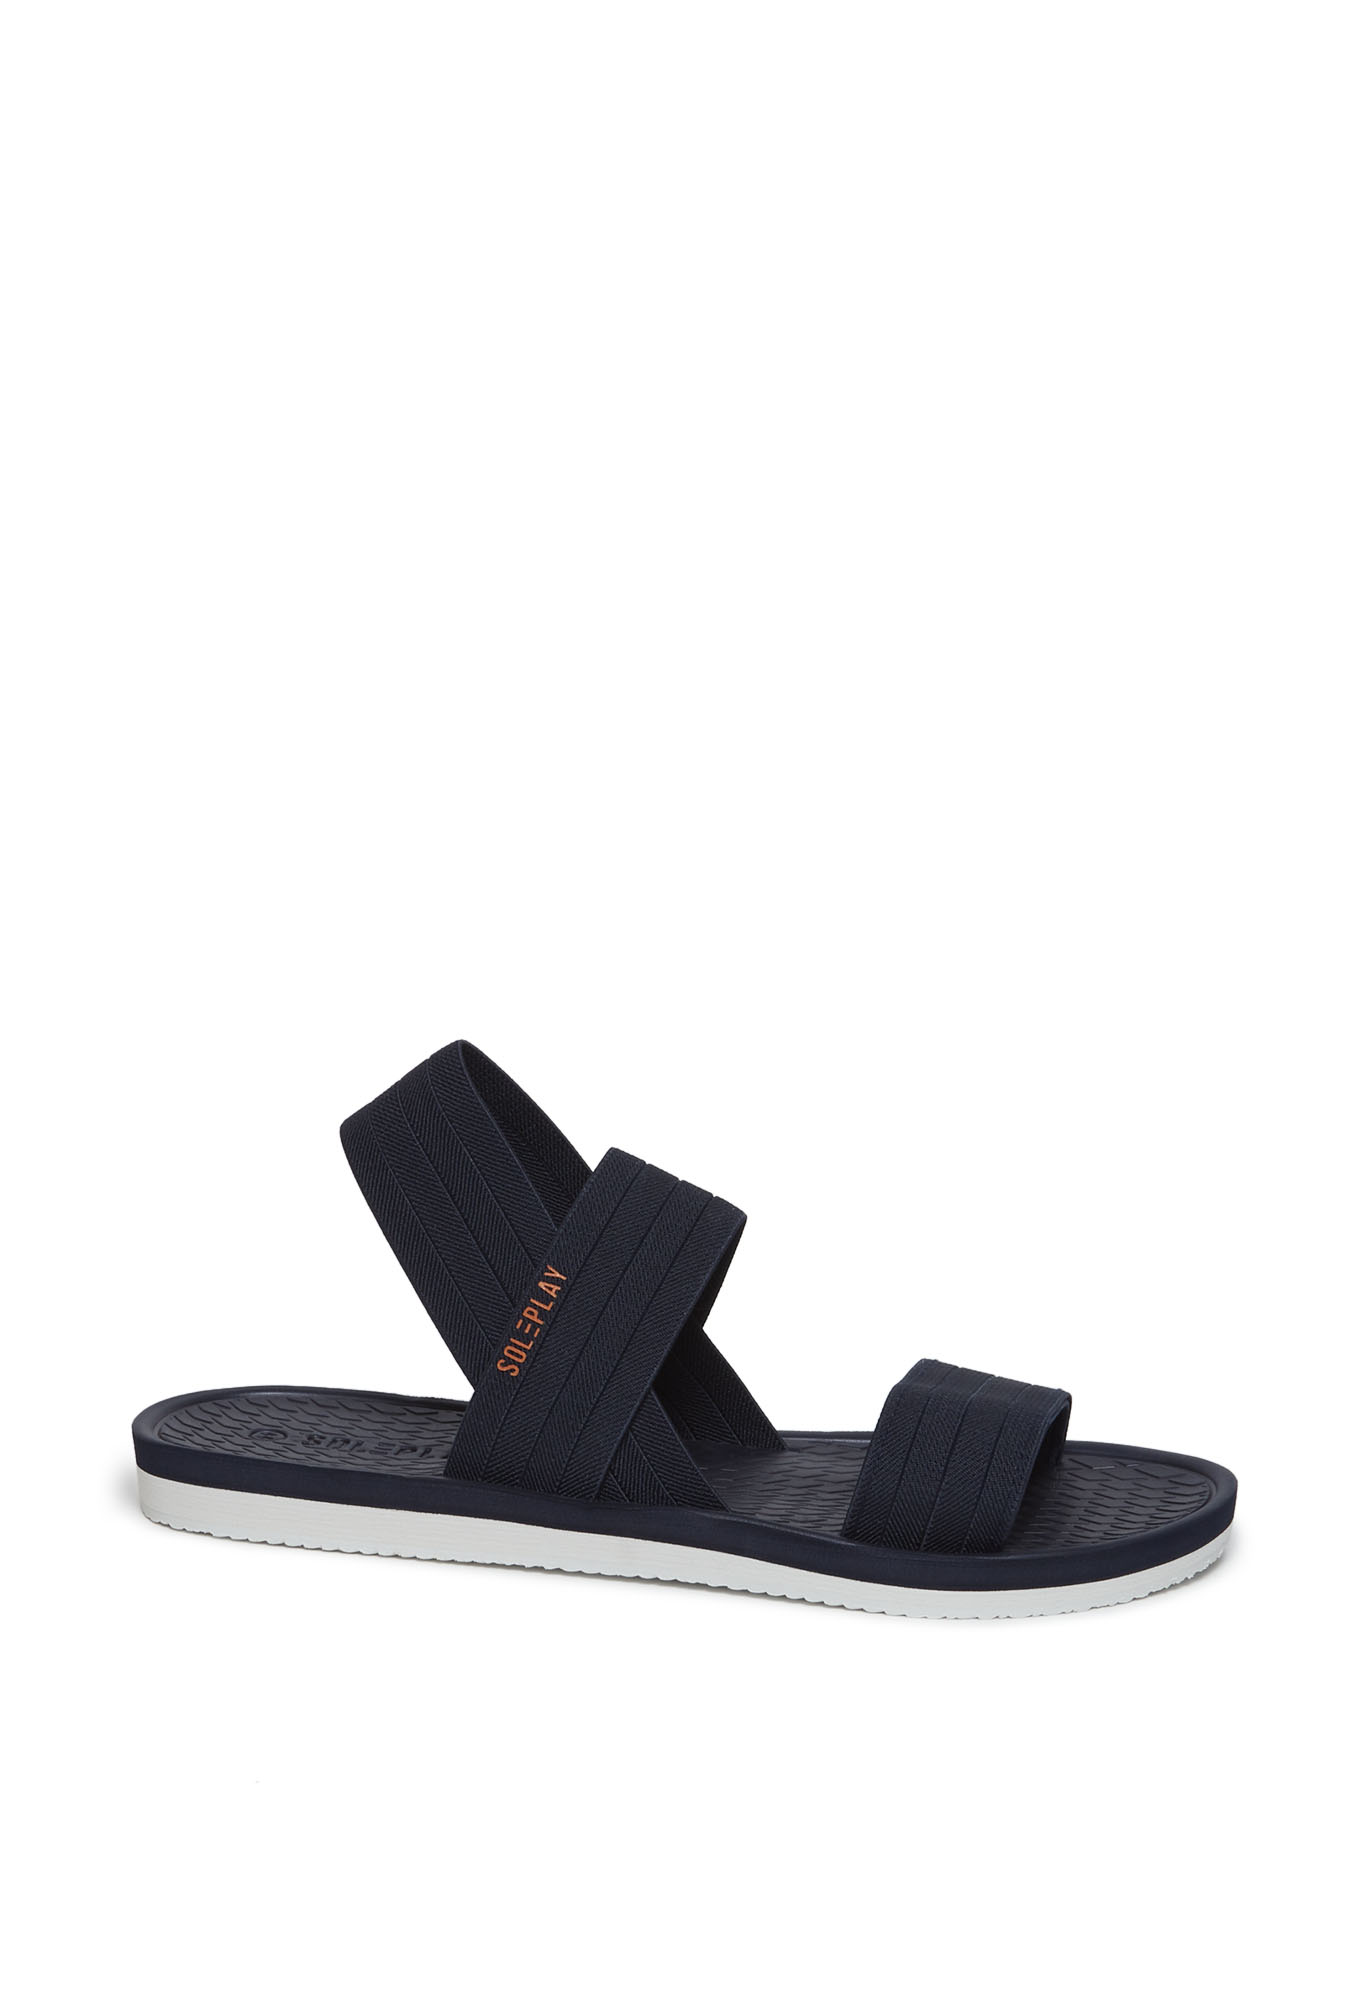 f5e11cb739fe Buy SOLEPLAY by Westside Navy Sandals For Men Online At Tata CLiQ